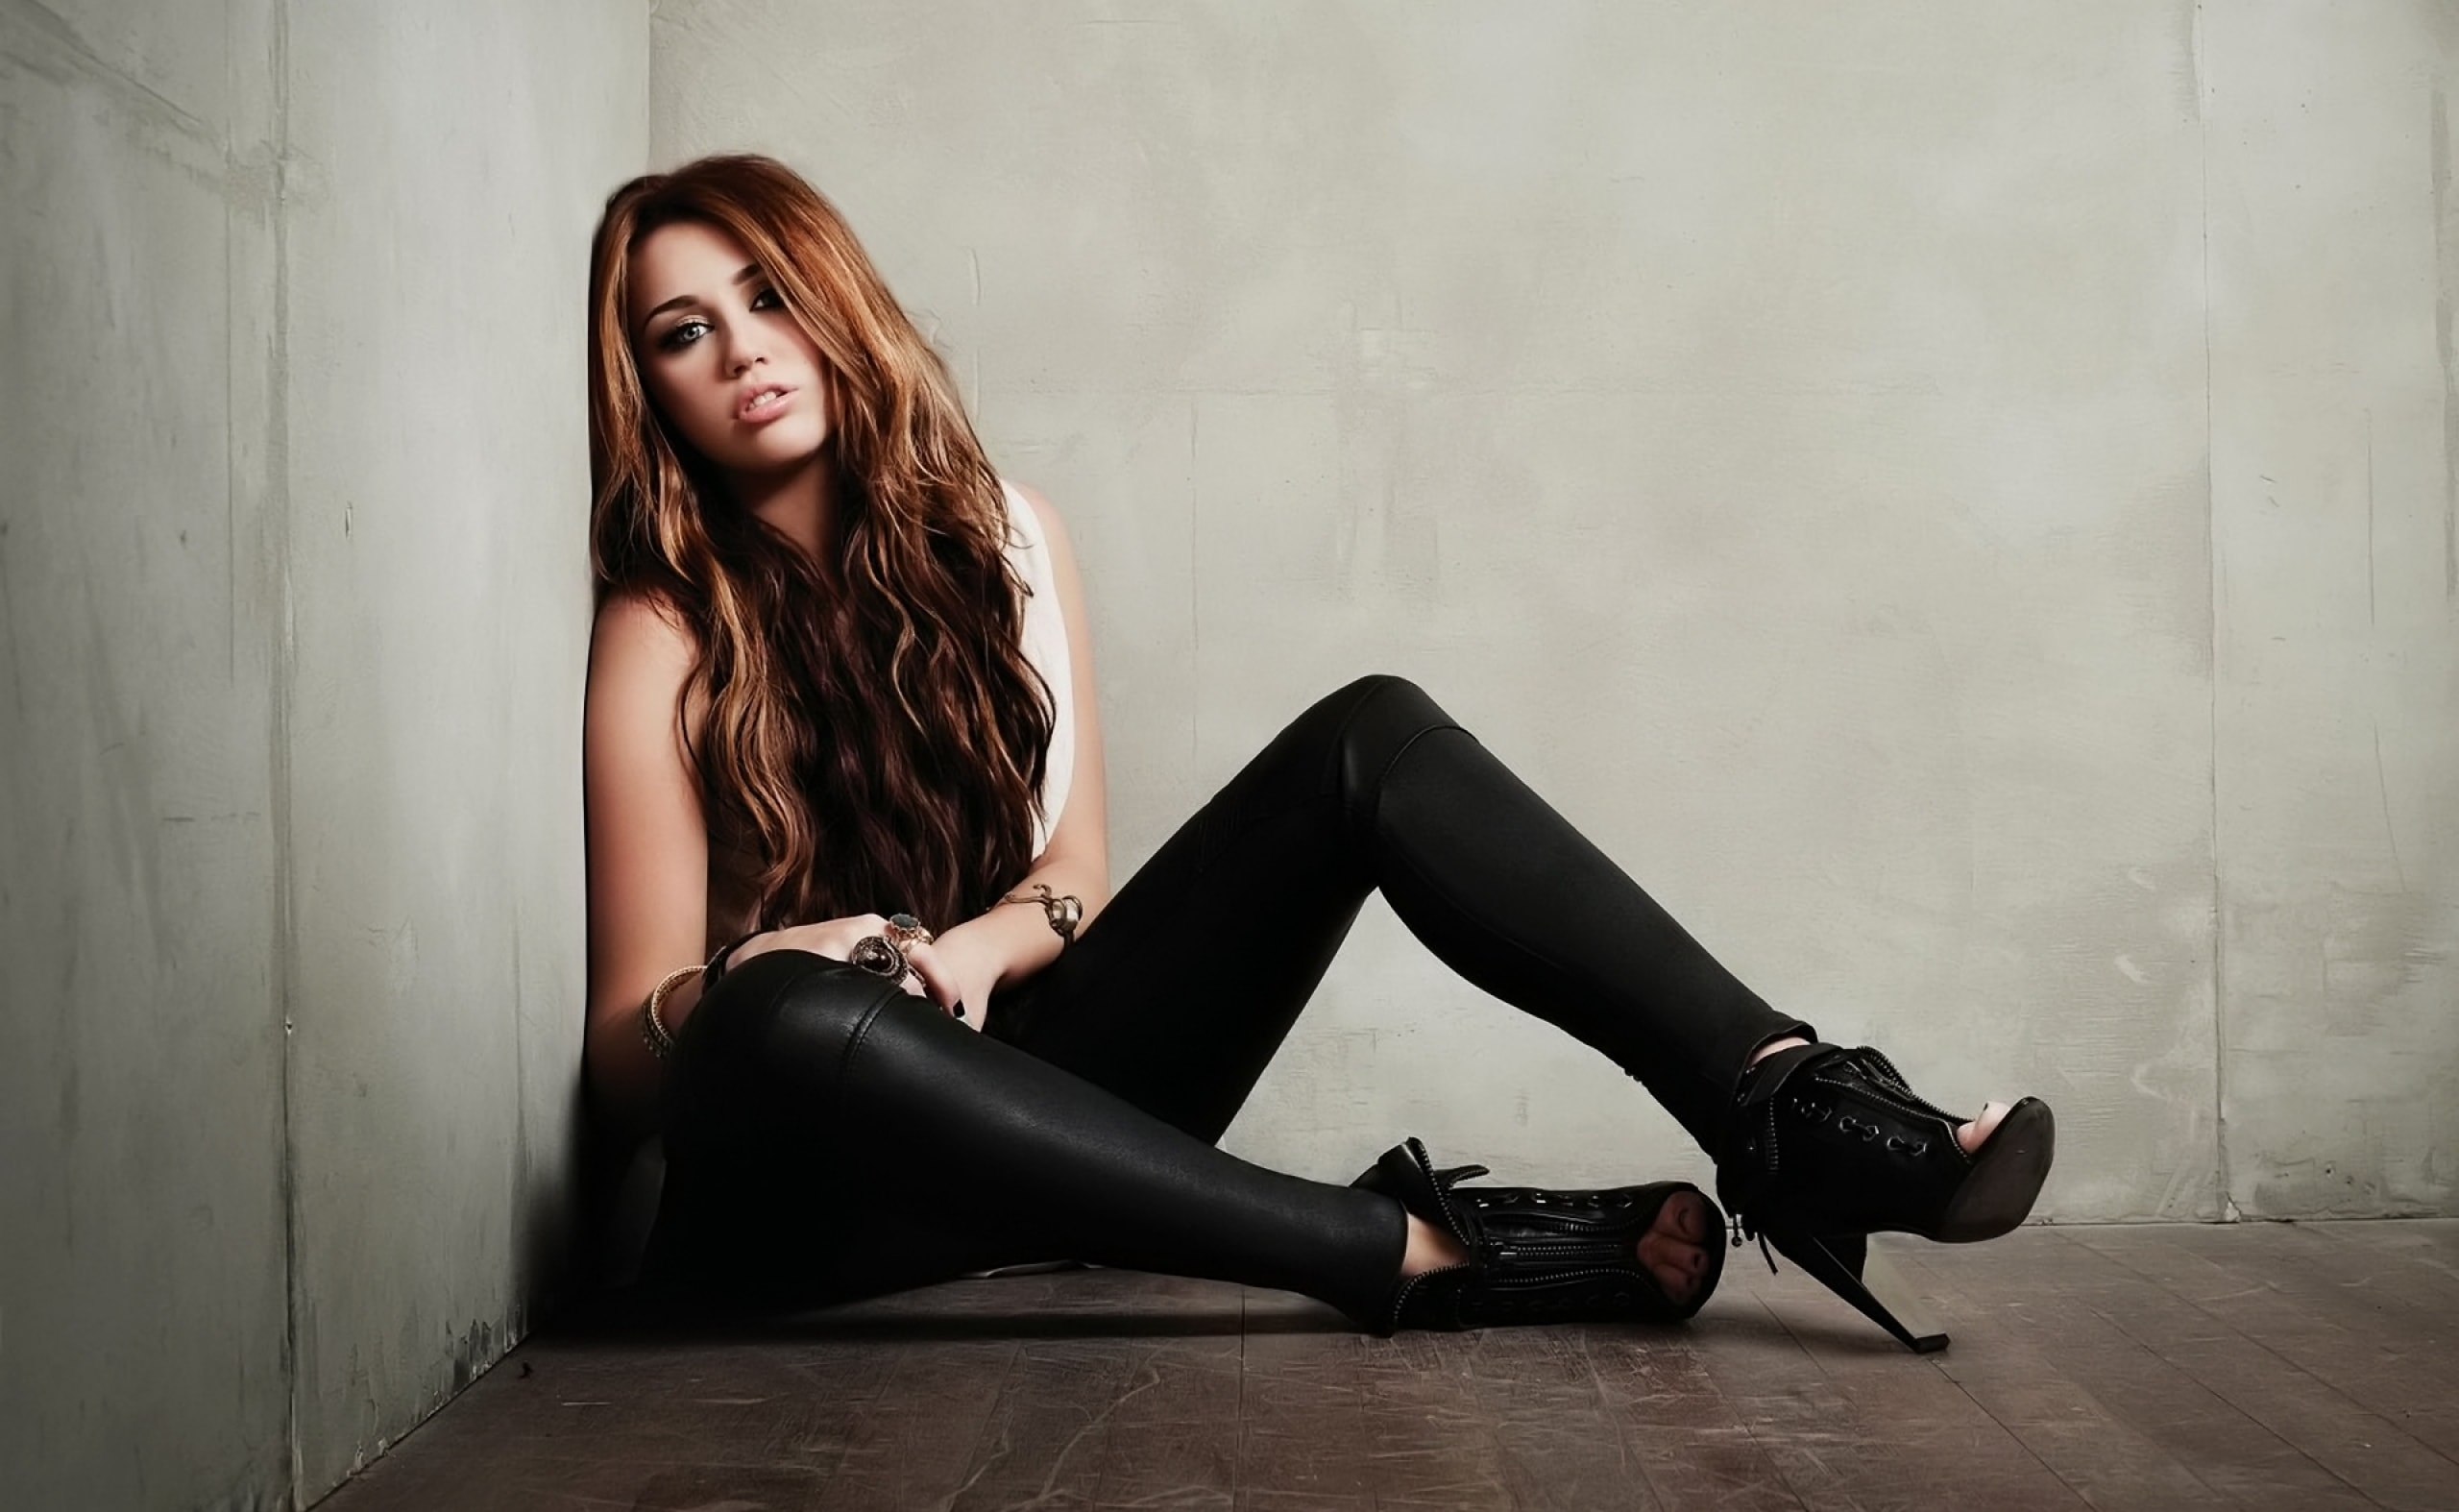 Miley Cyrus HQ wallpapers